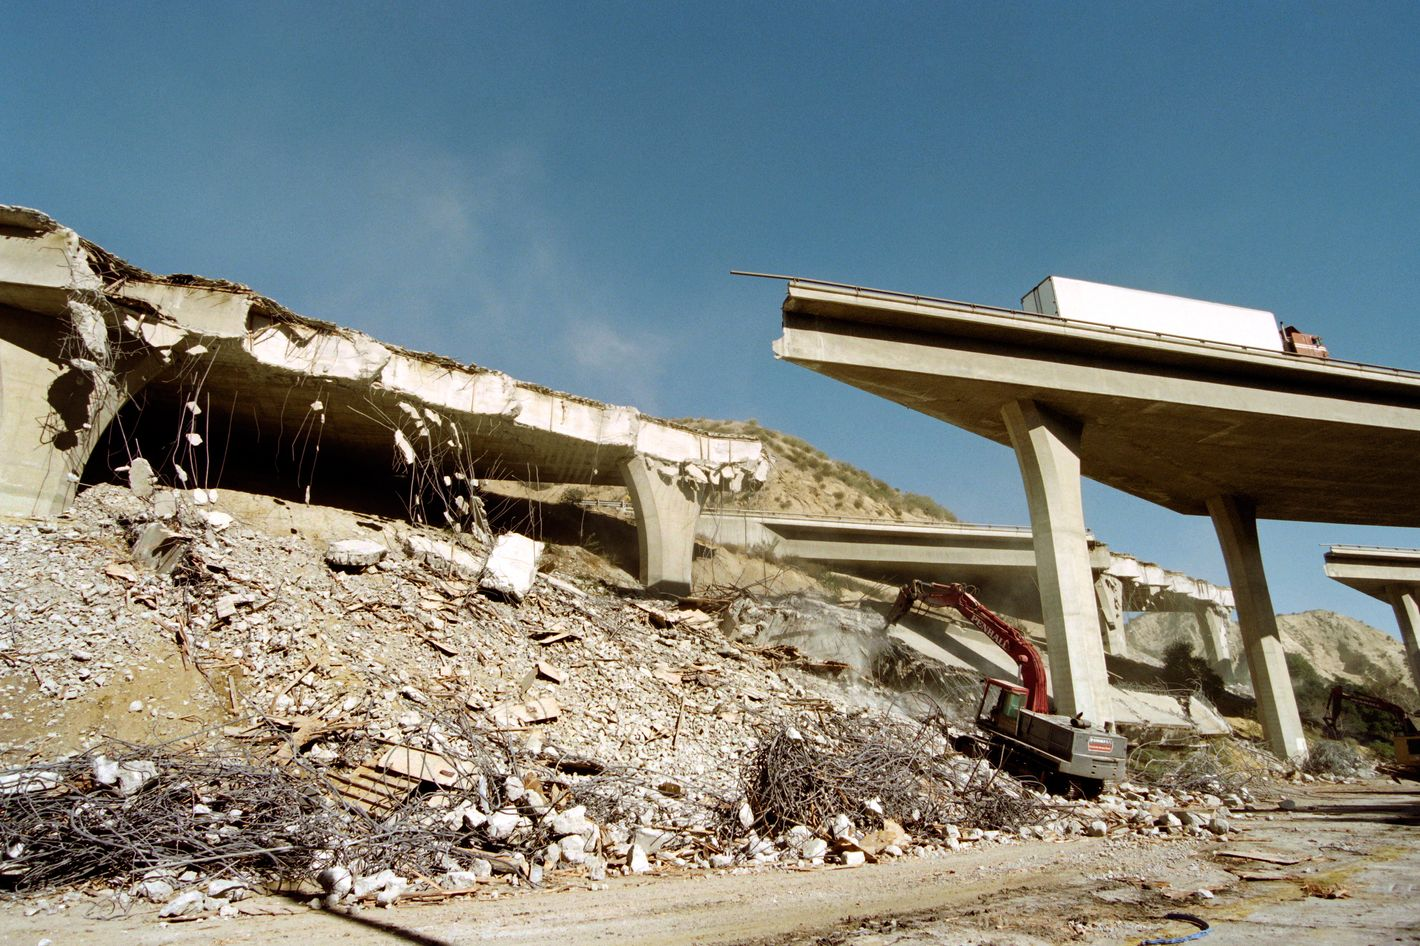 Heavy equipment prepares for moving portions of Interstate 5 as an abandoned truck rests on the dmaged structure on January 18, 1994.  The highway collapsed January 17 when an earthquake hit the region, causing 7 billion USD in damage in the area.      AFP PHOTO TIM CLARY        (Photo credit should read TIM CLARY/AFP/GettyImages)